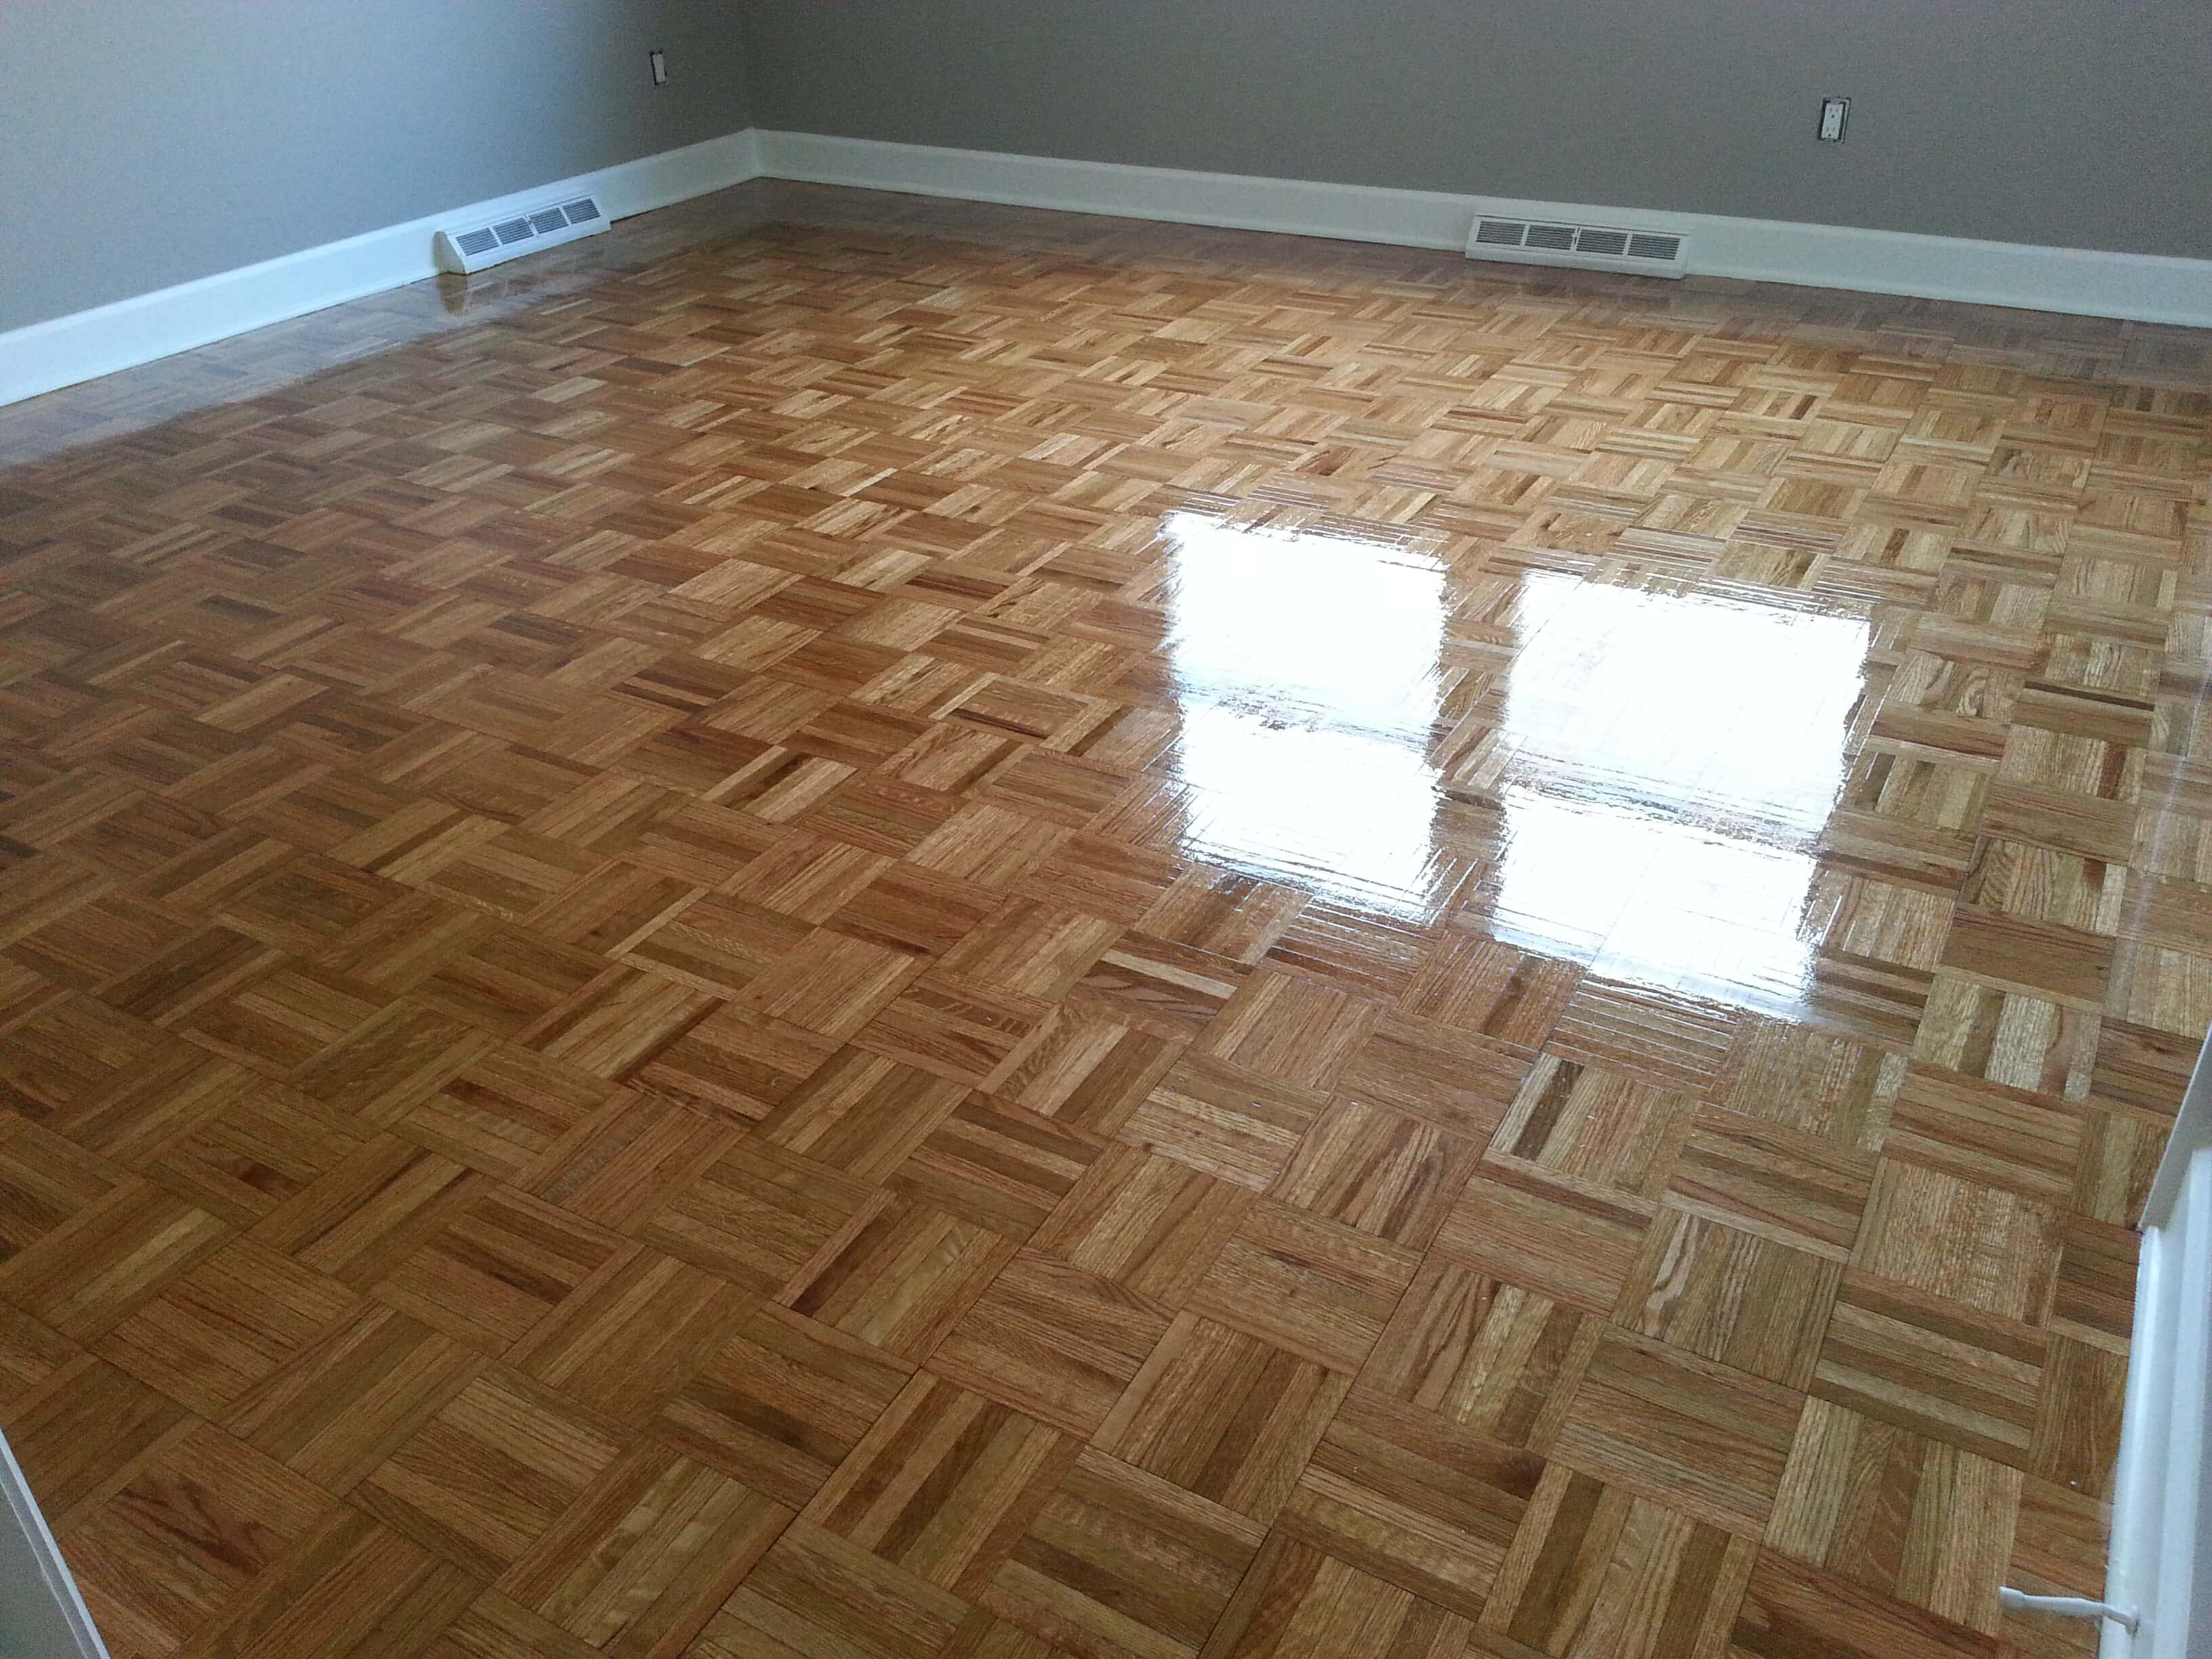 A recently refinished parquet hardwood floor